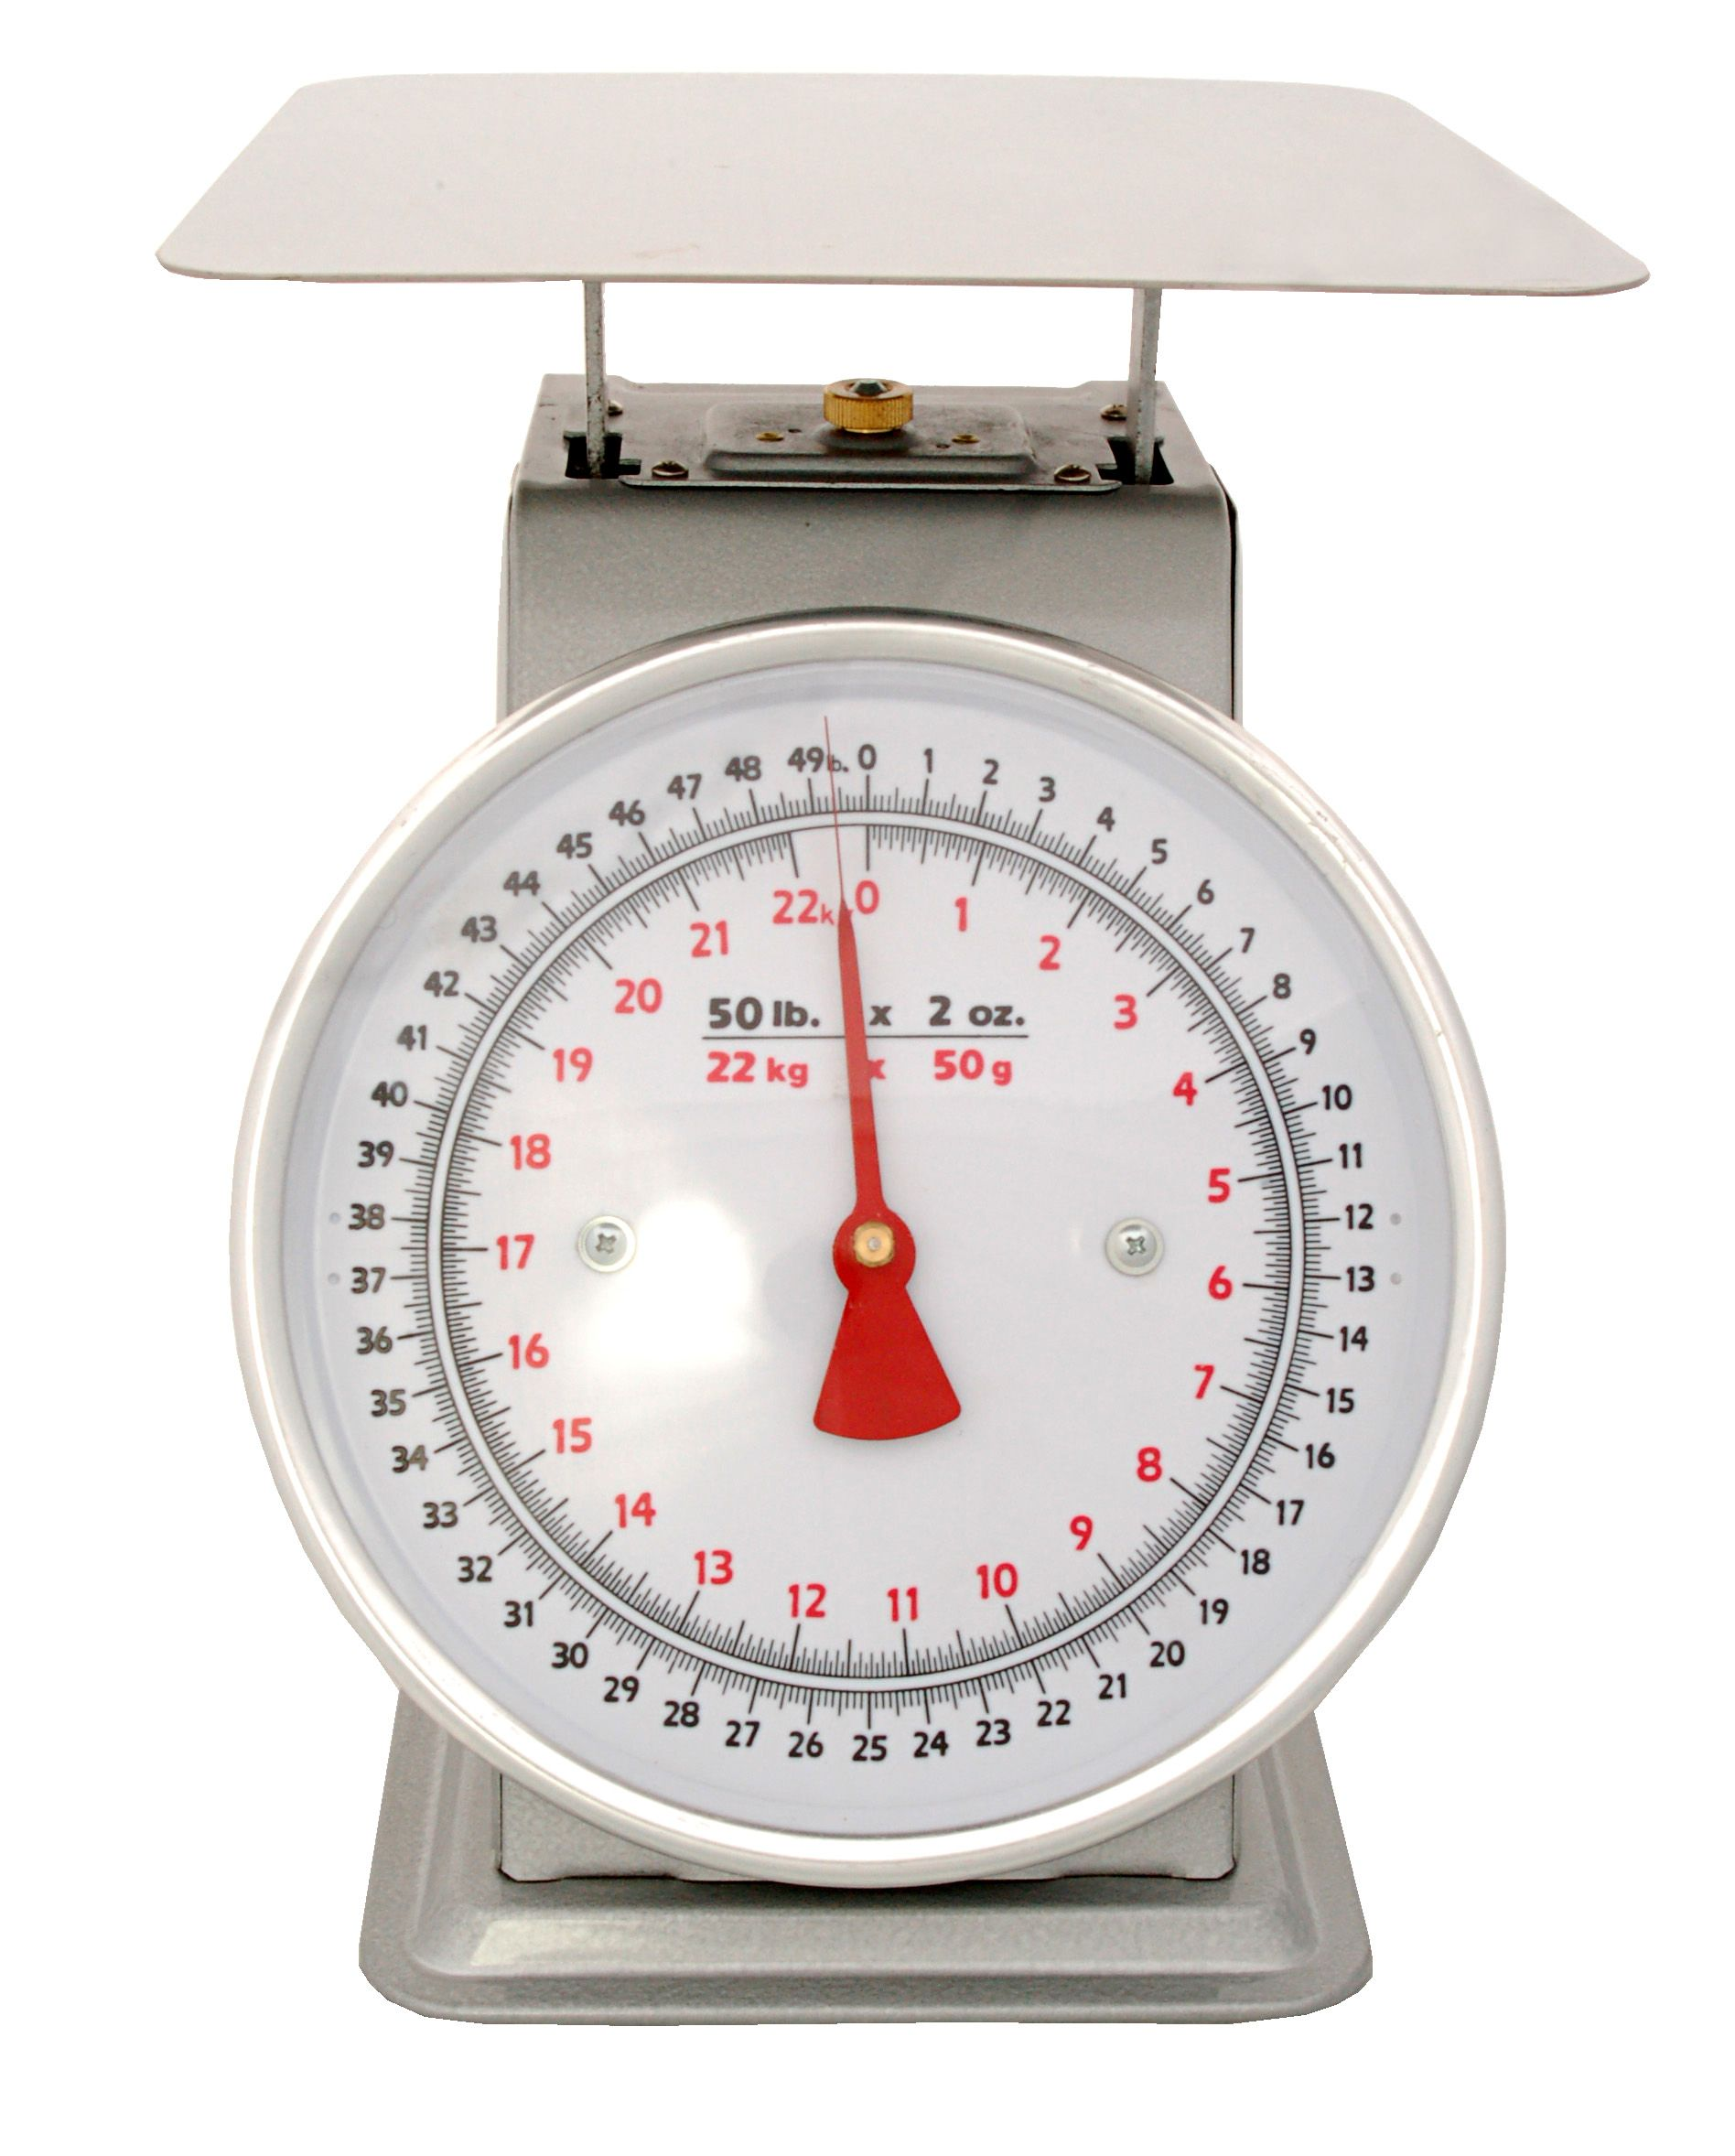 Weighing Scale Metric